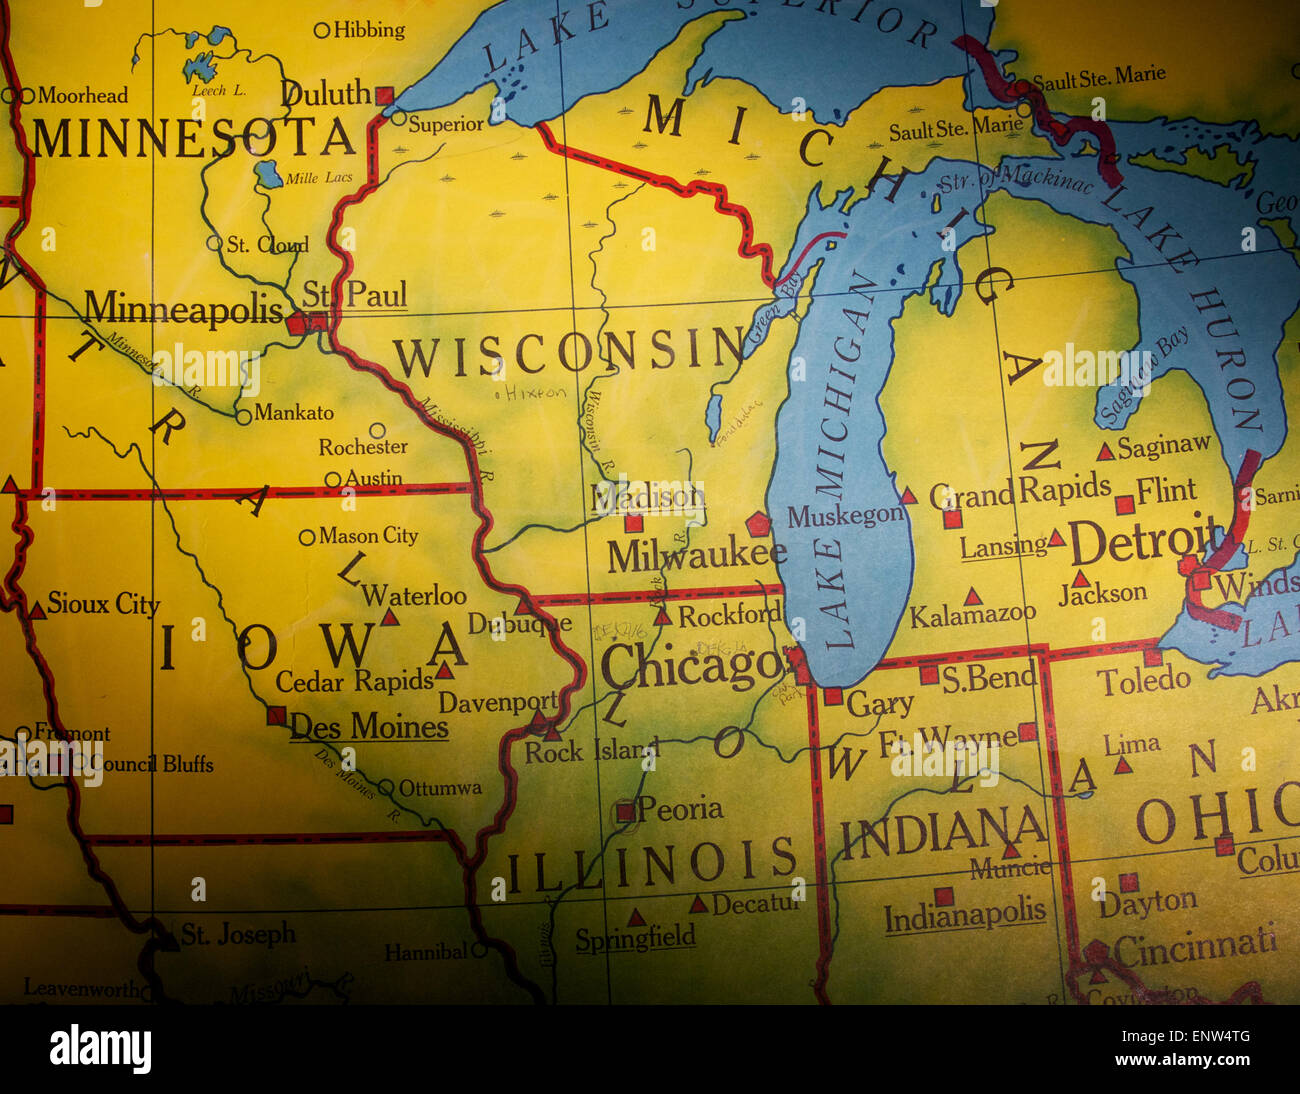 Old US Map Of Midwestern States Stock Photo Royalty Free Image - Us map of midwest states